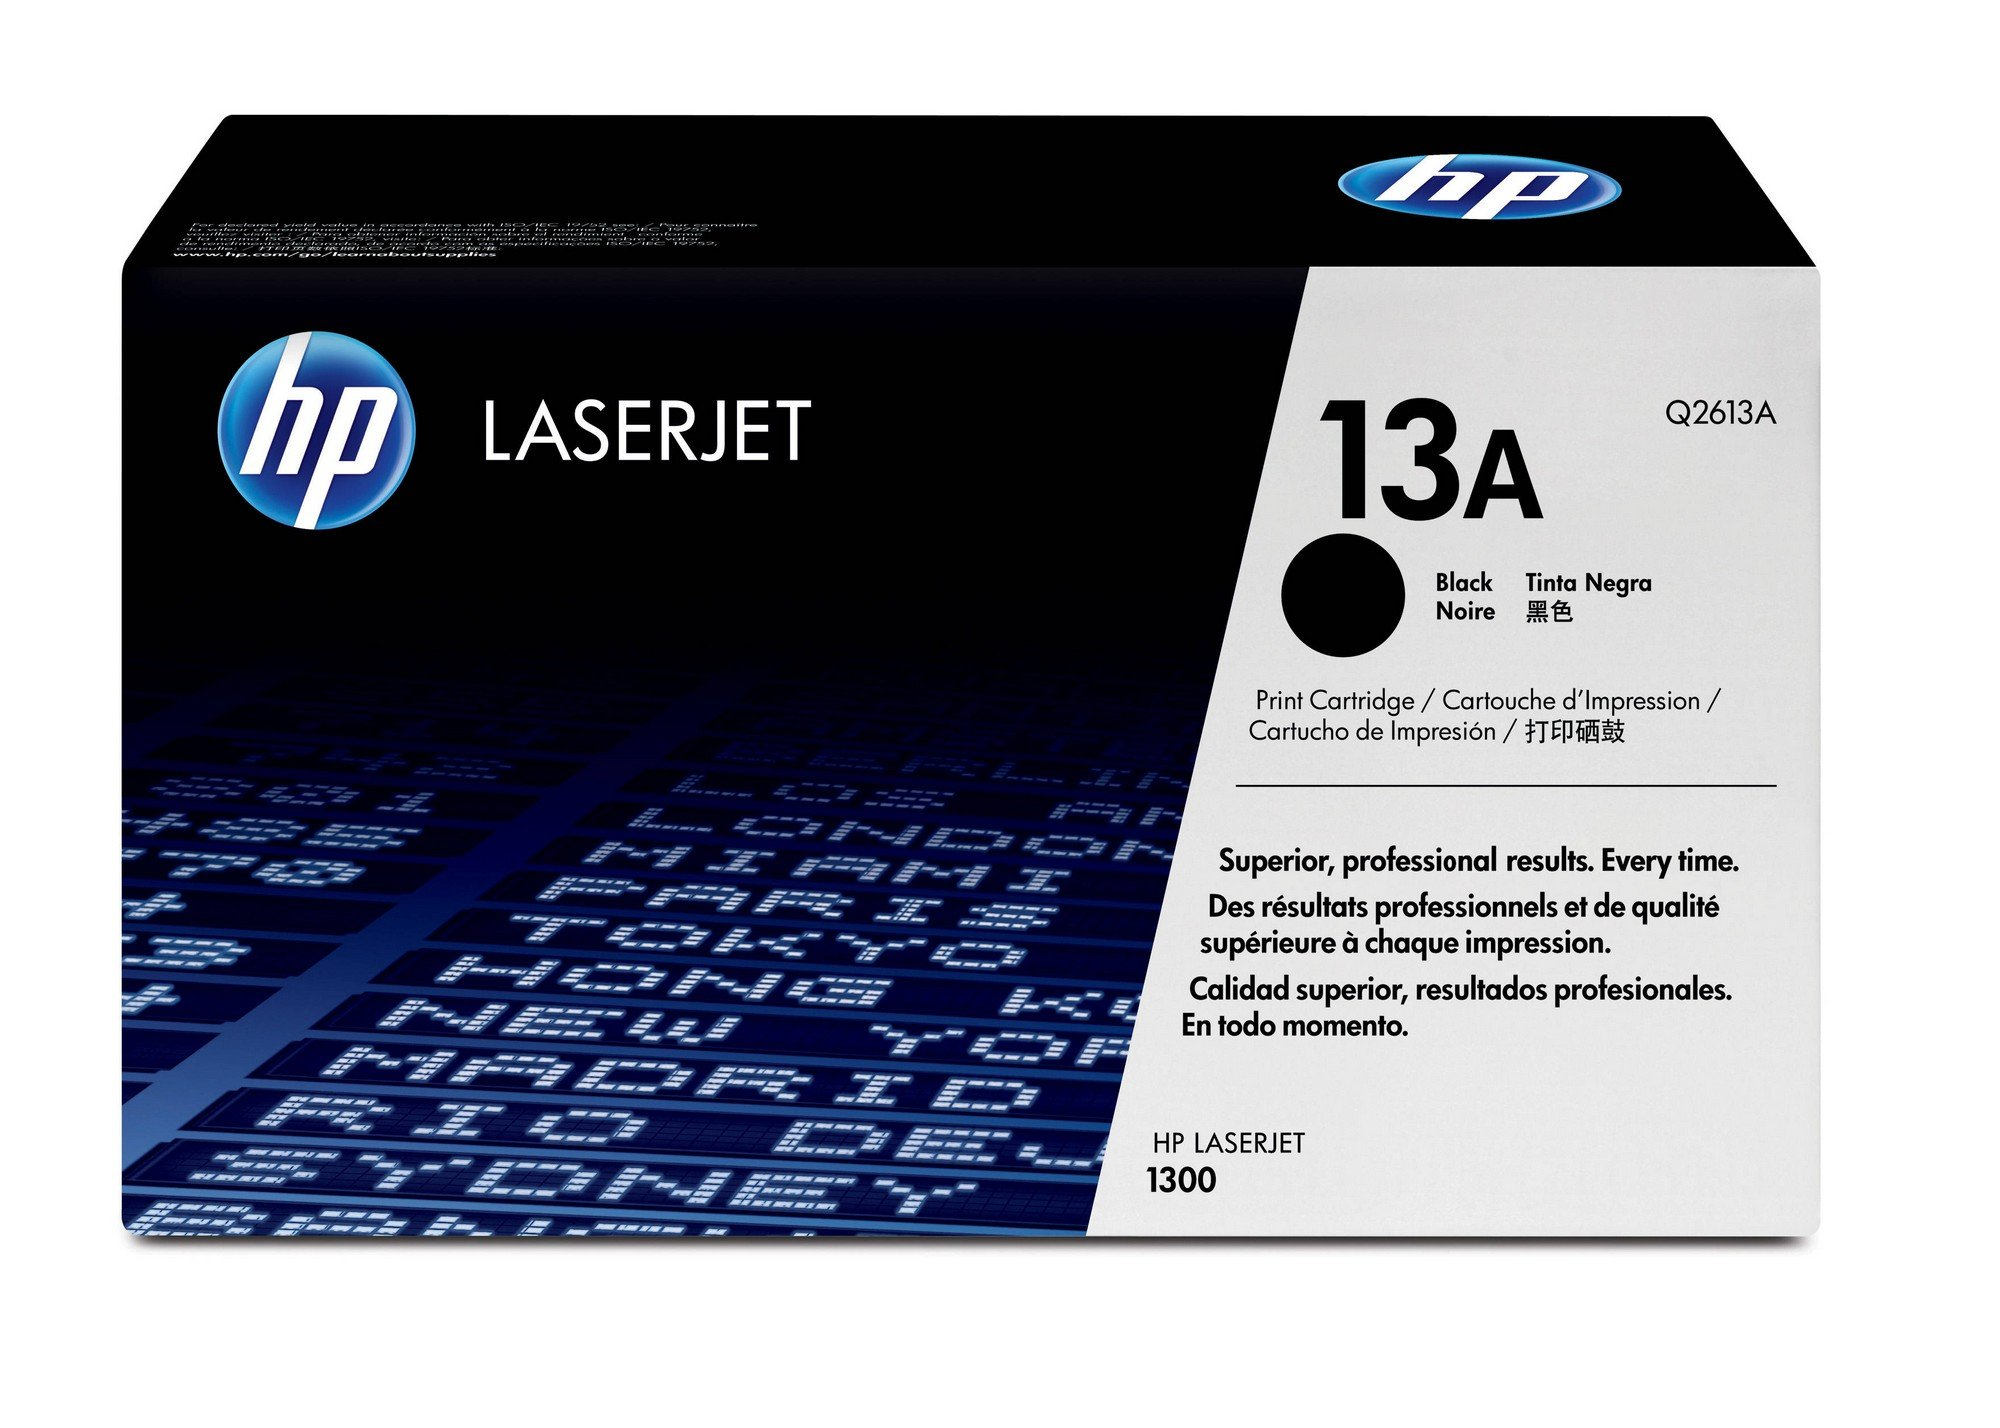 HP 13A (Q2613A) Black Toner Cartridge for HP LaserJet 1300